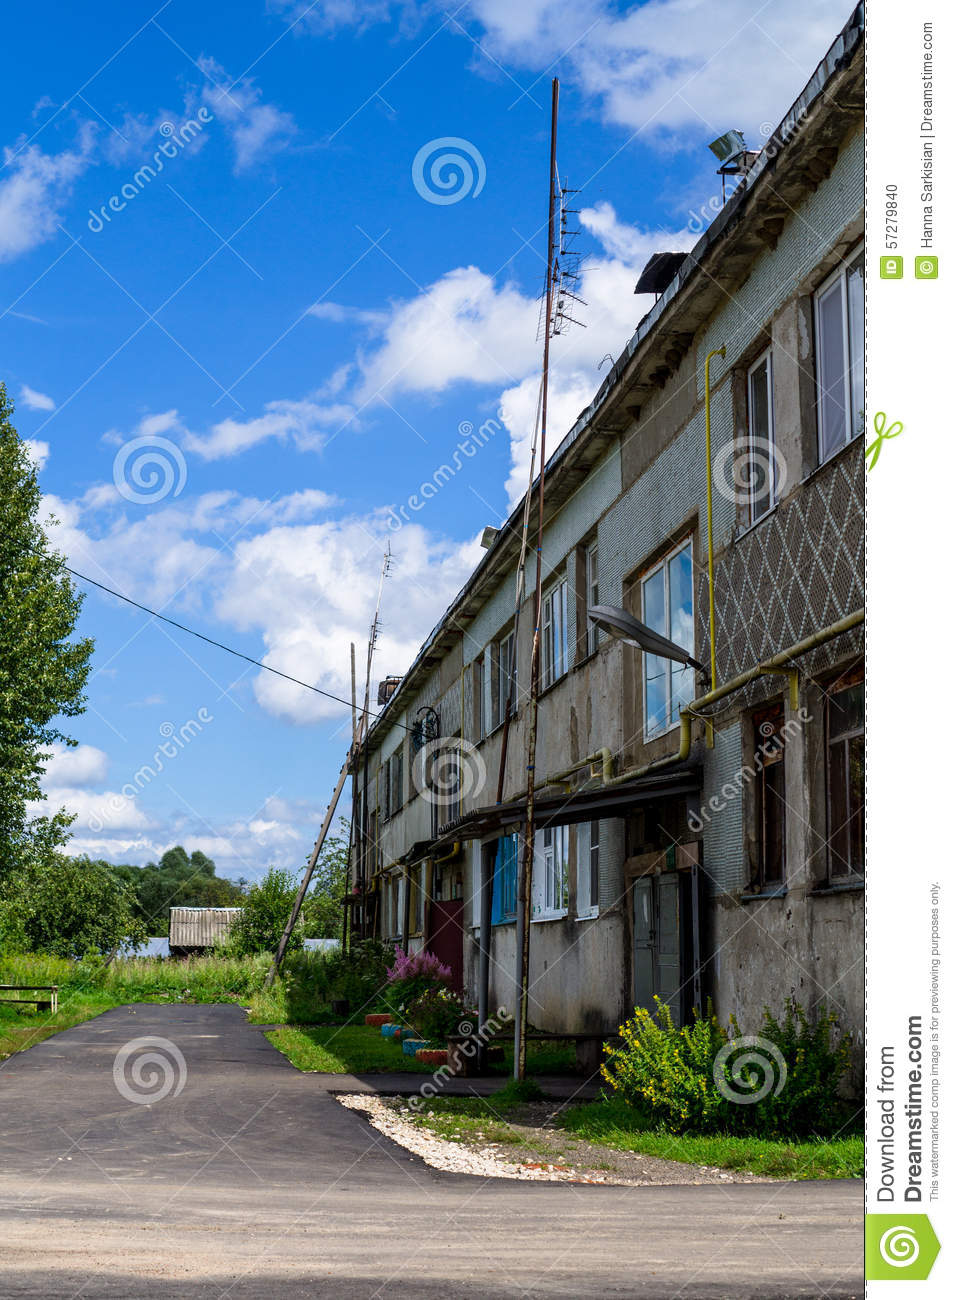 Stock Photo Old Houses In Russia Image 57279840